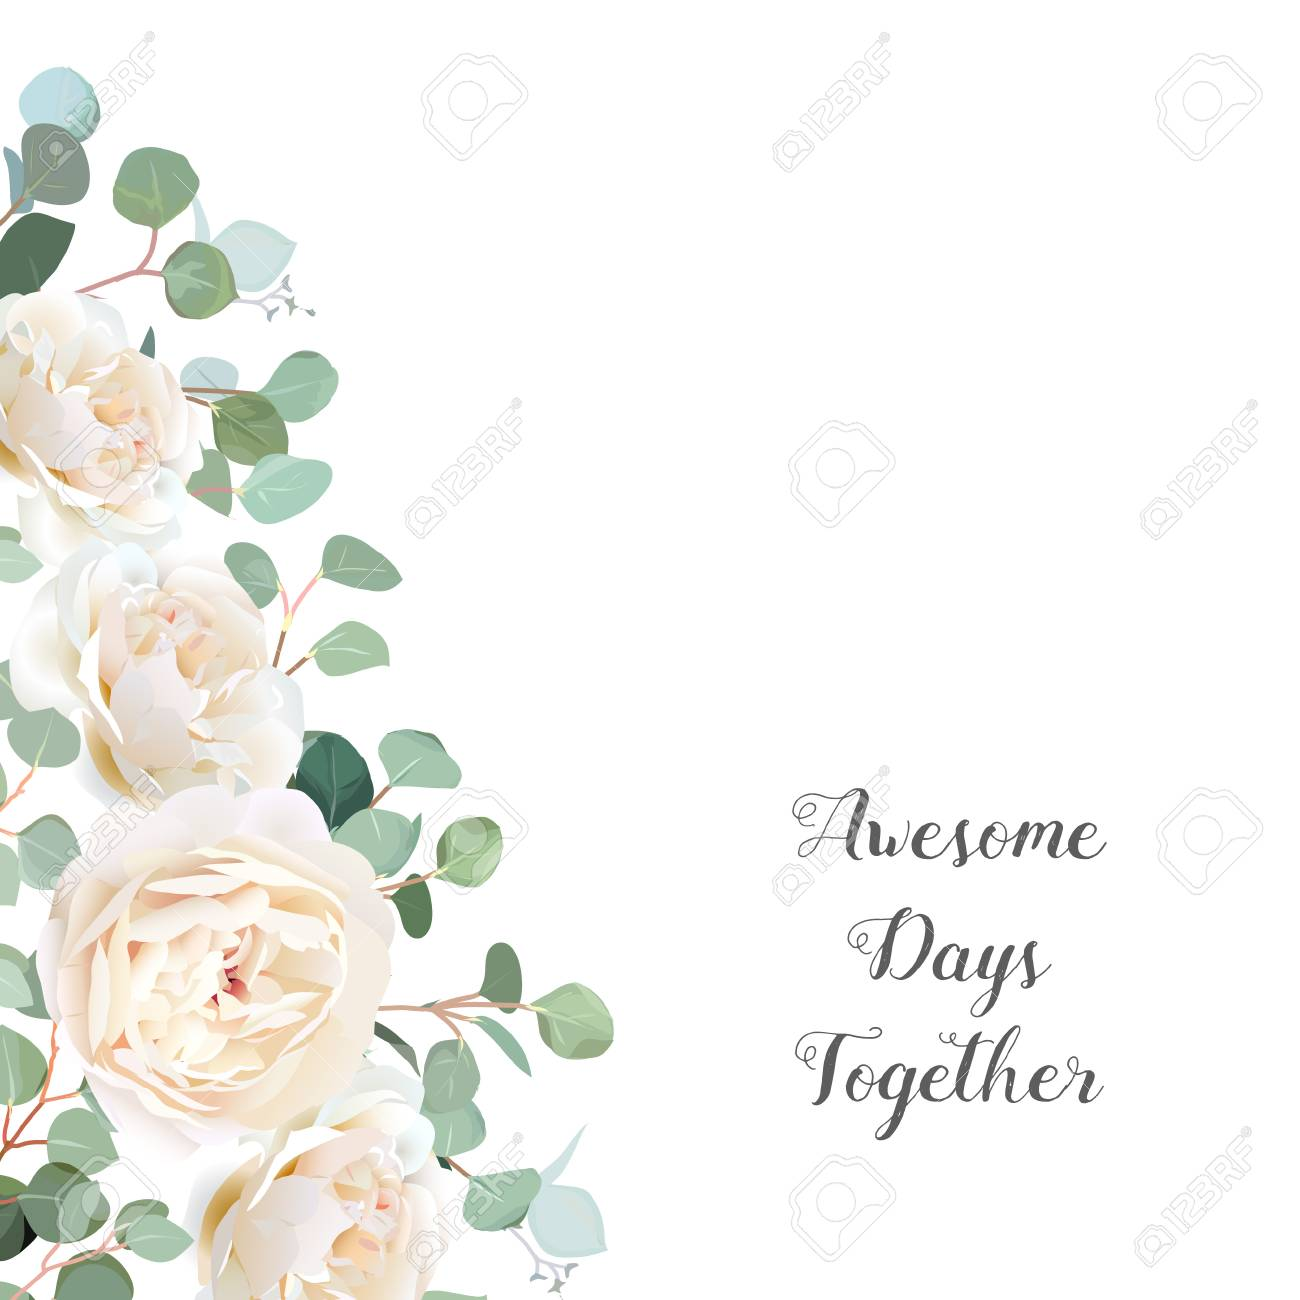 Creamy White Roses And Silver Dollar Eucalyptus Branches Vector Design Frame Cute Rustic Wedding Greenery